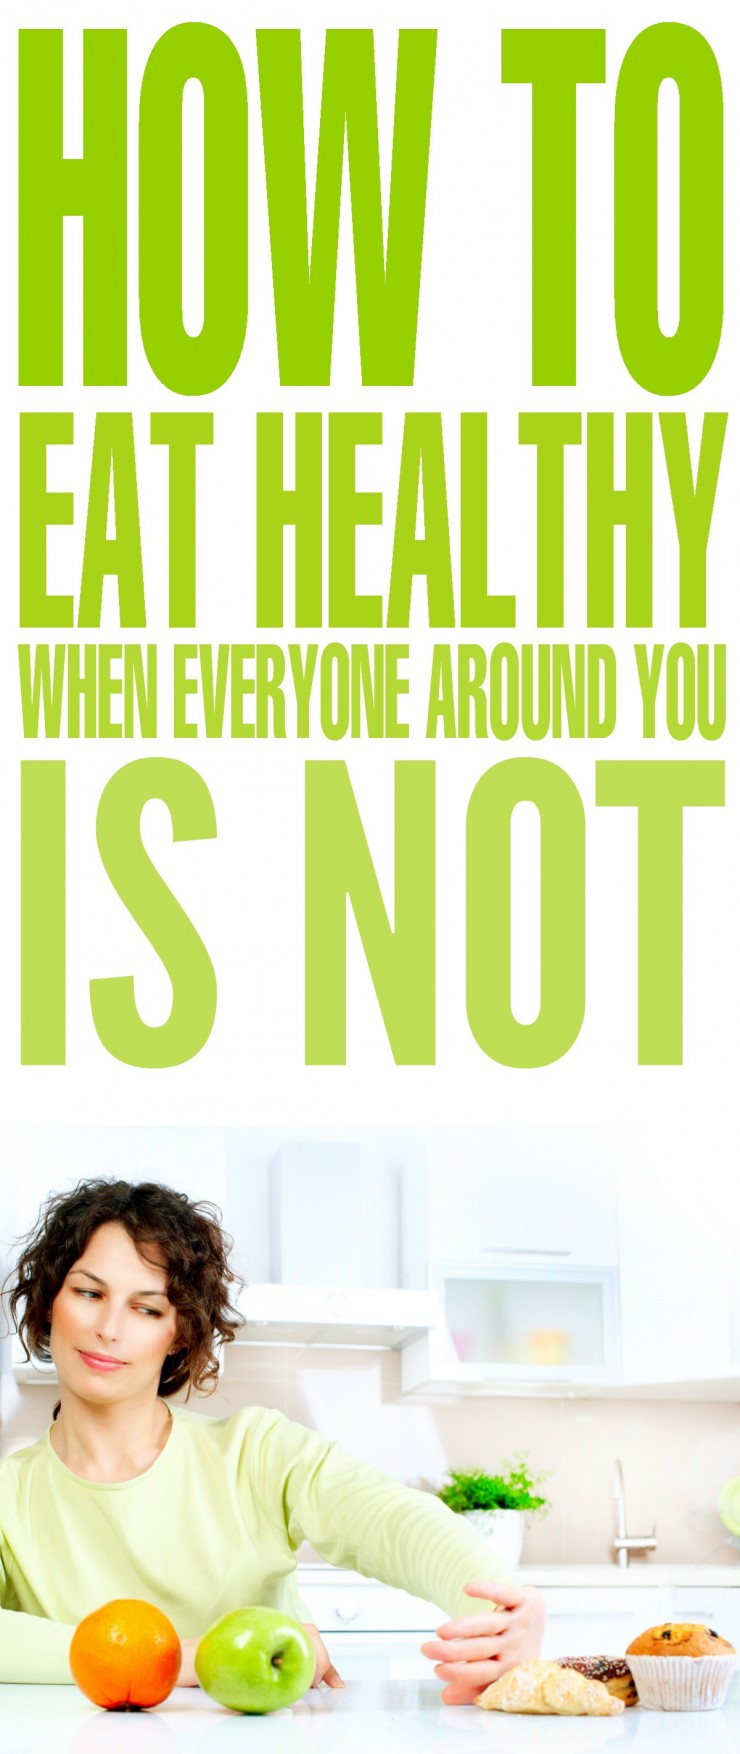 Let's face it. Going on a diet and eating healthy is not the easiest thing to do. This is especially true if you're the only one trying to eat healthy. When everyone around you is splurging and eating unhealthy food, it can be very tempting to join in. However, if you want to live a healthier lifestyle, you'll need to resist. These tips will help you eat healthy, even when everyone around you is not.